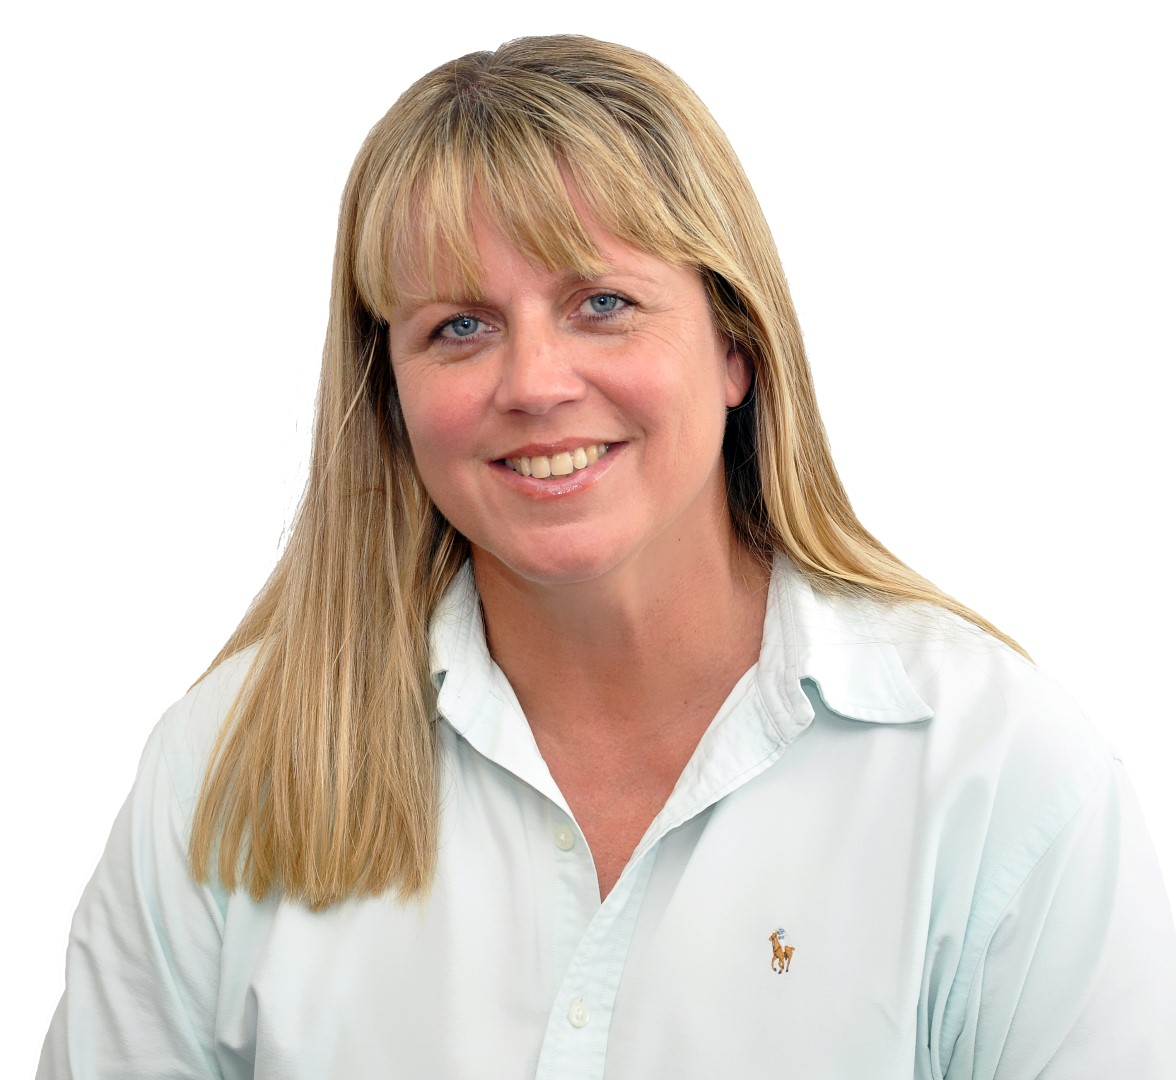 Real Estate Agent - Leanne Jefferies